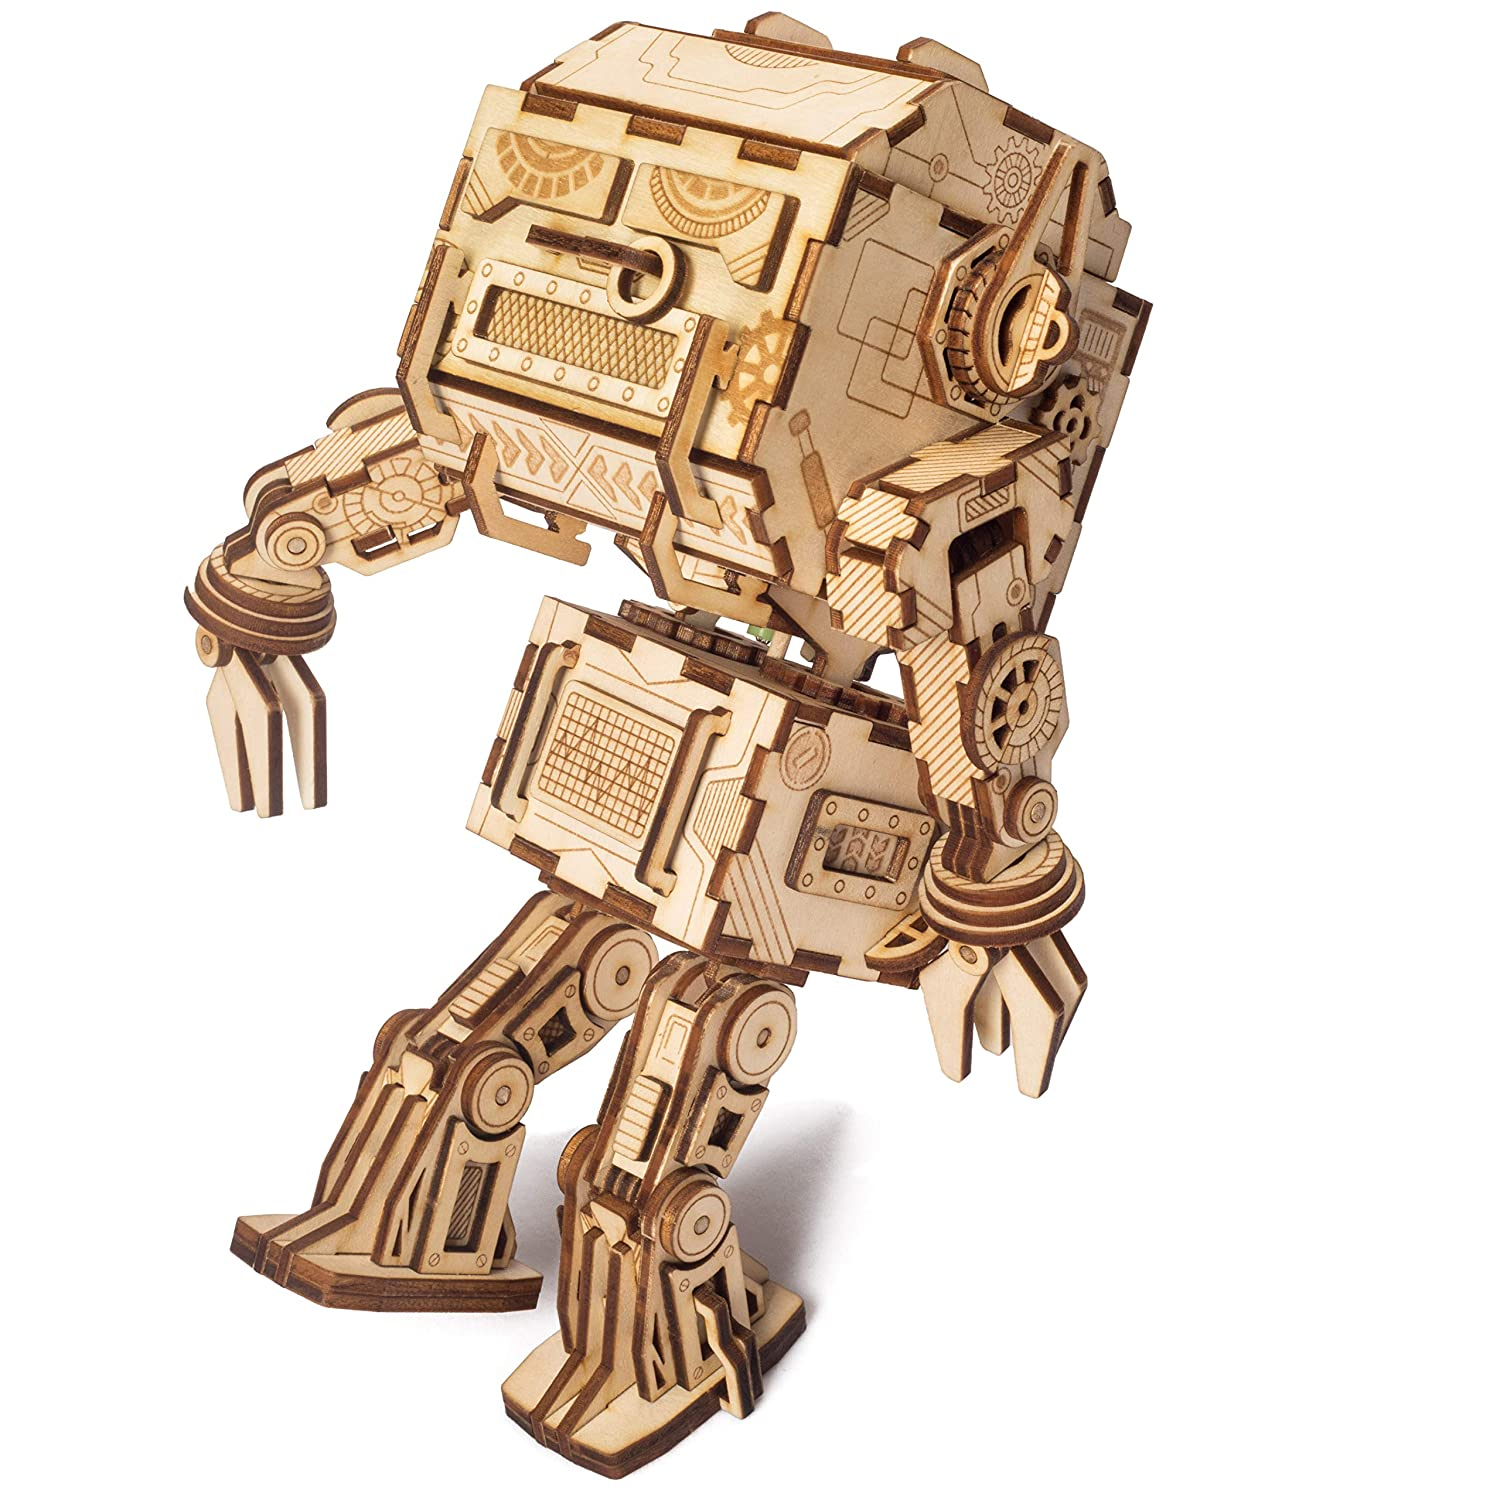 Age 14+ DIY Model Building Kits Gift for Adults /& Kids Twerking Robot Rowood Dancing Robot 3D Wooden Puzzle Brain Teaser Craft Toy